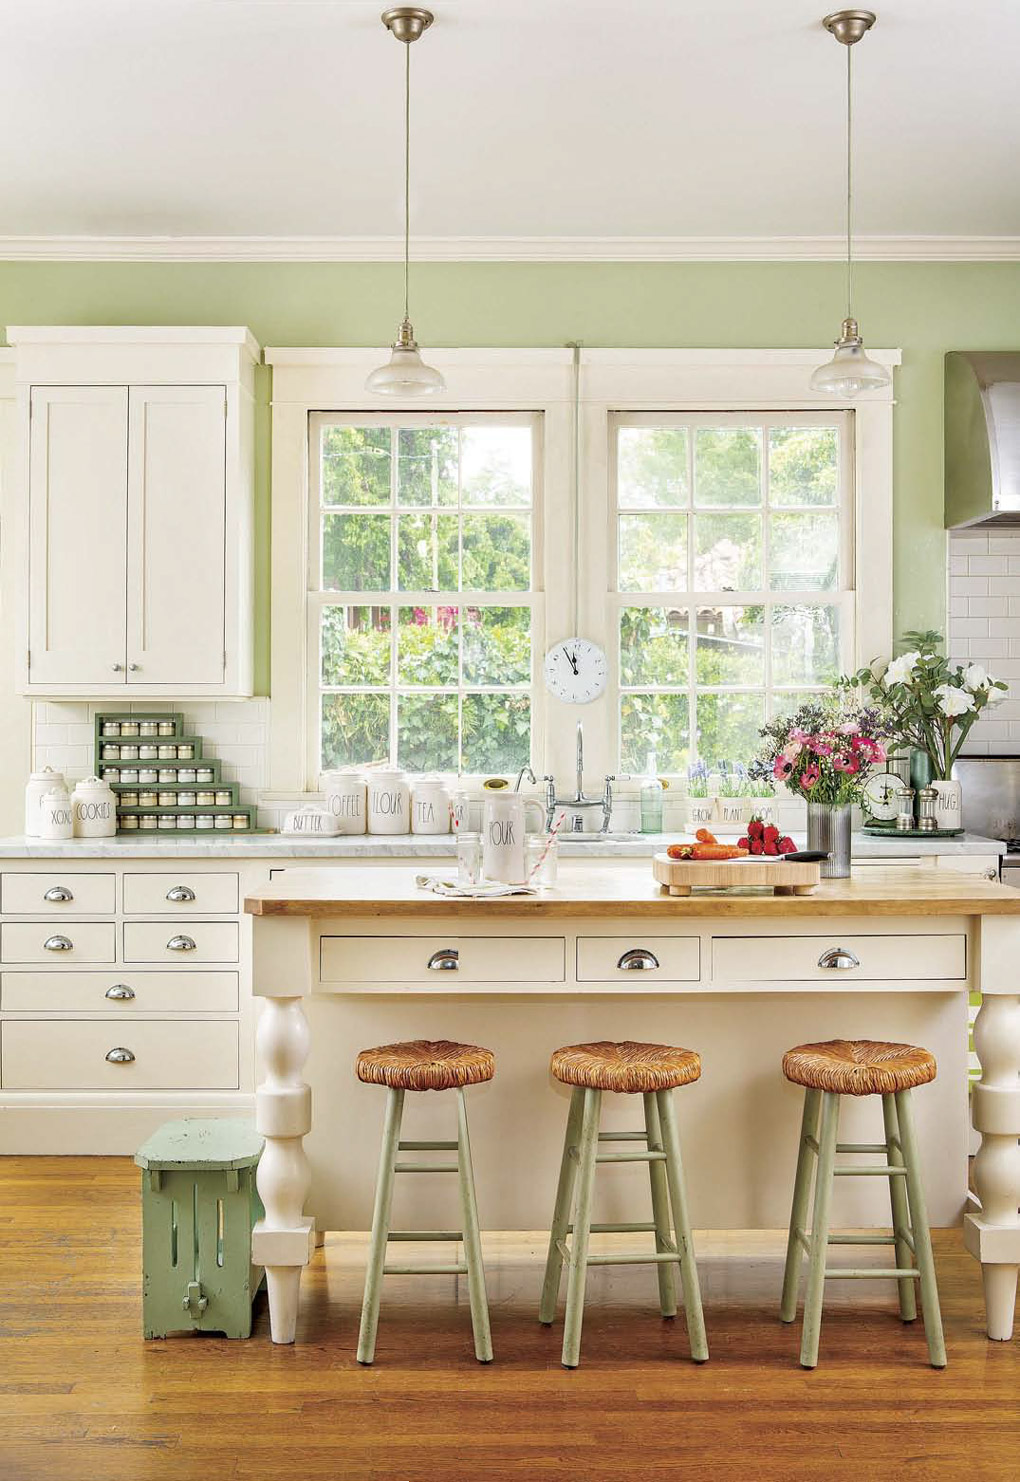 Springfield Barn Home: Kitchen and farm dining table at the heart of the home